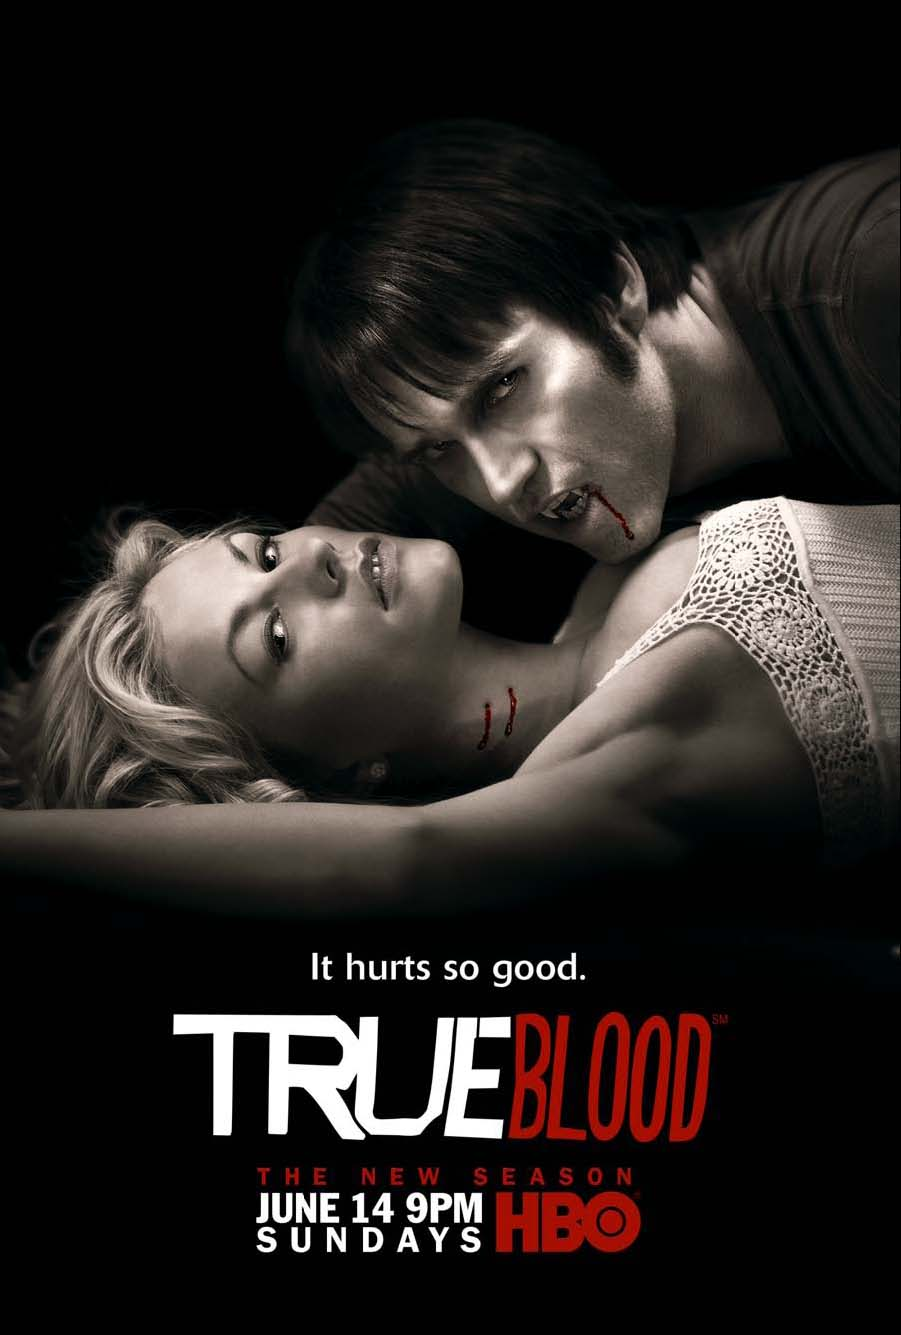 True Blood Season 2 It Hurts So Good Promo Poster